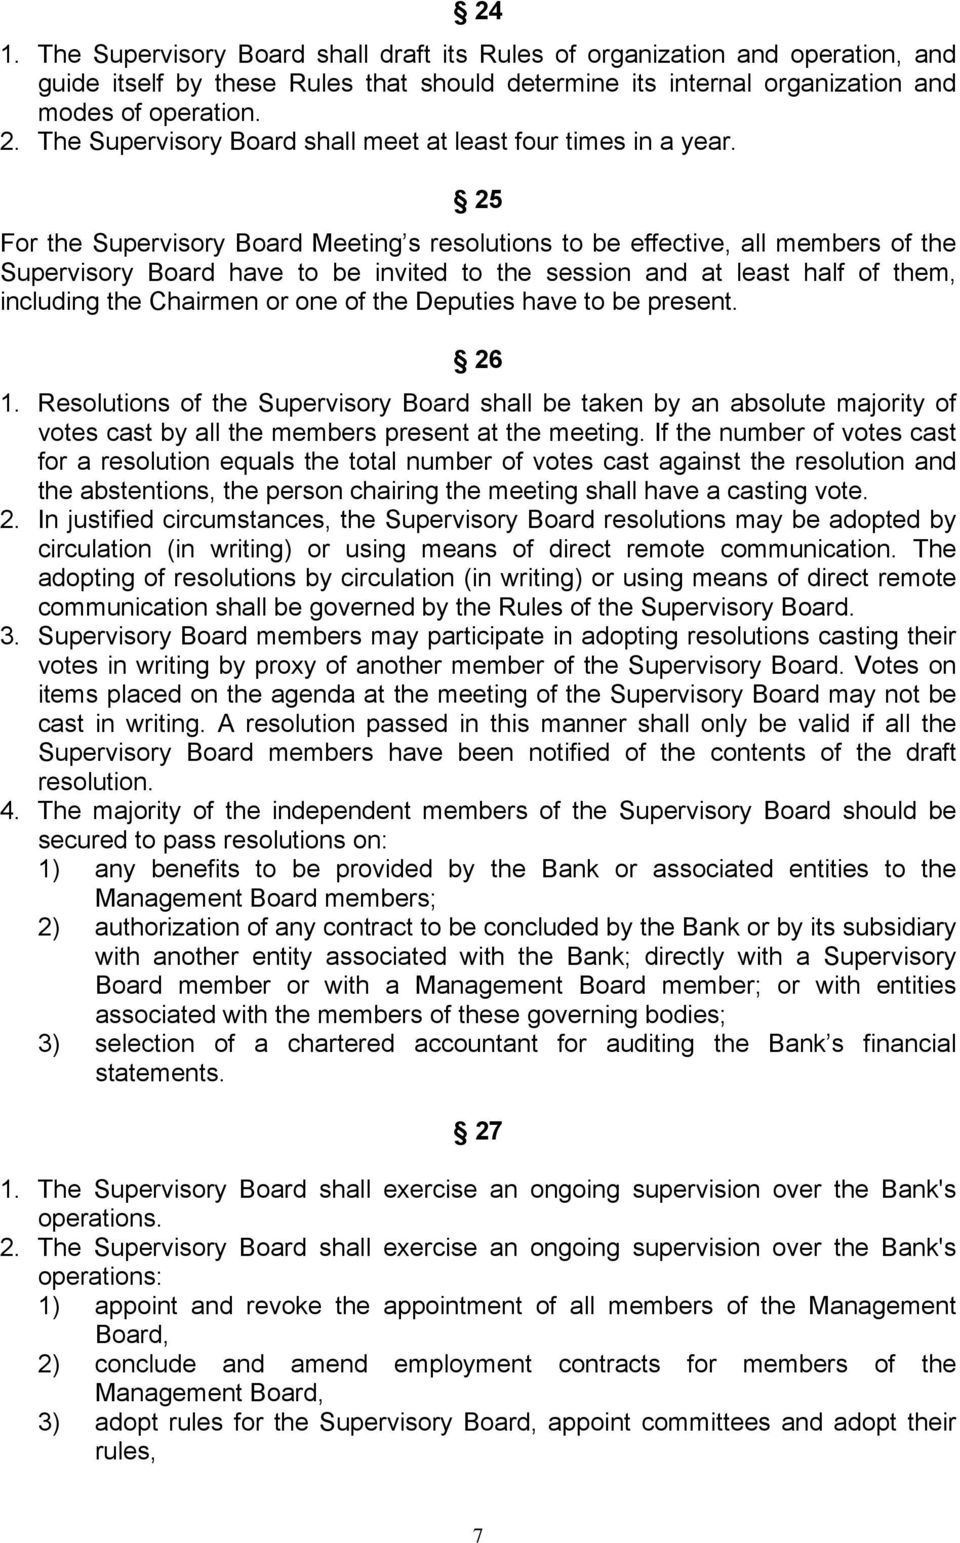 25 For the Supervisory Board Meeting s resolutions to be effective, all members of the Supervisory Board have to be invited to the session and at least half of them, including the Chairmen or one of